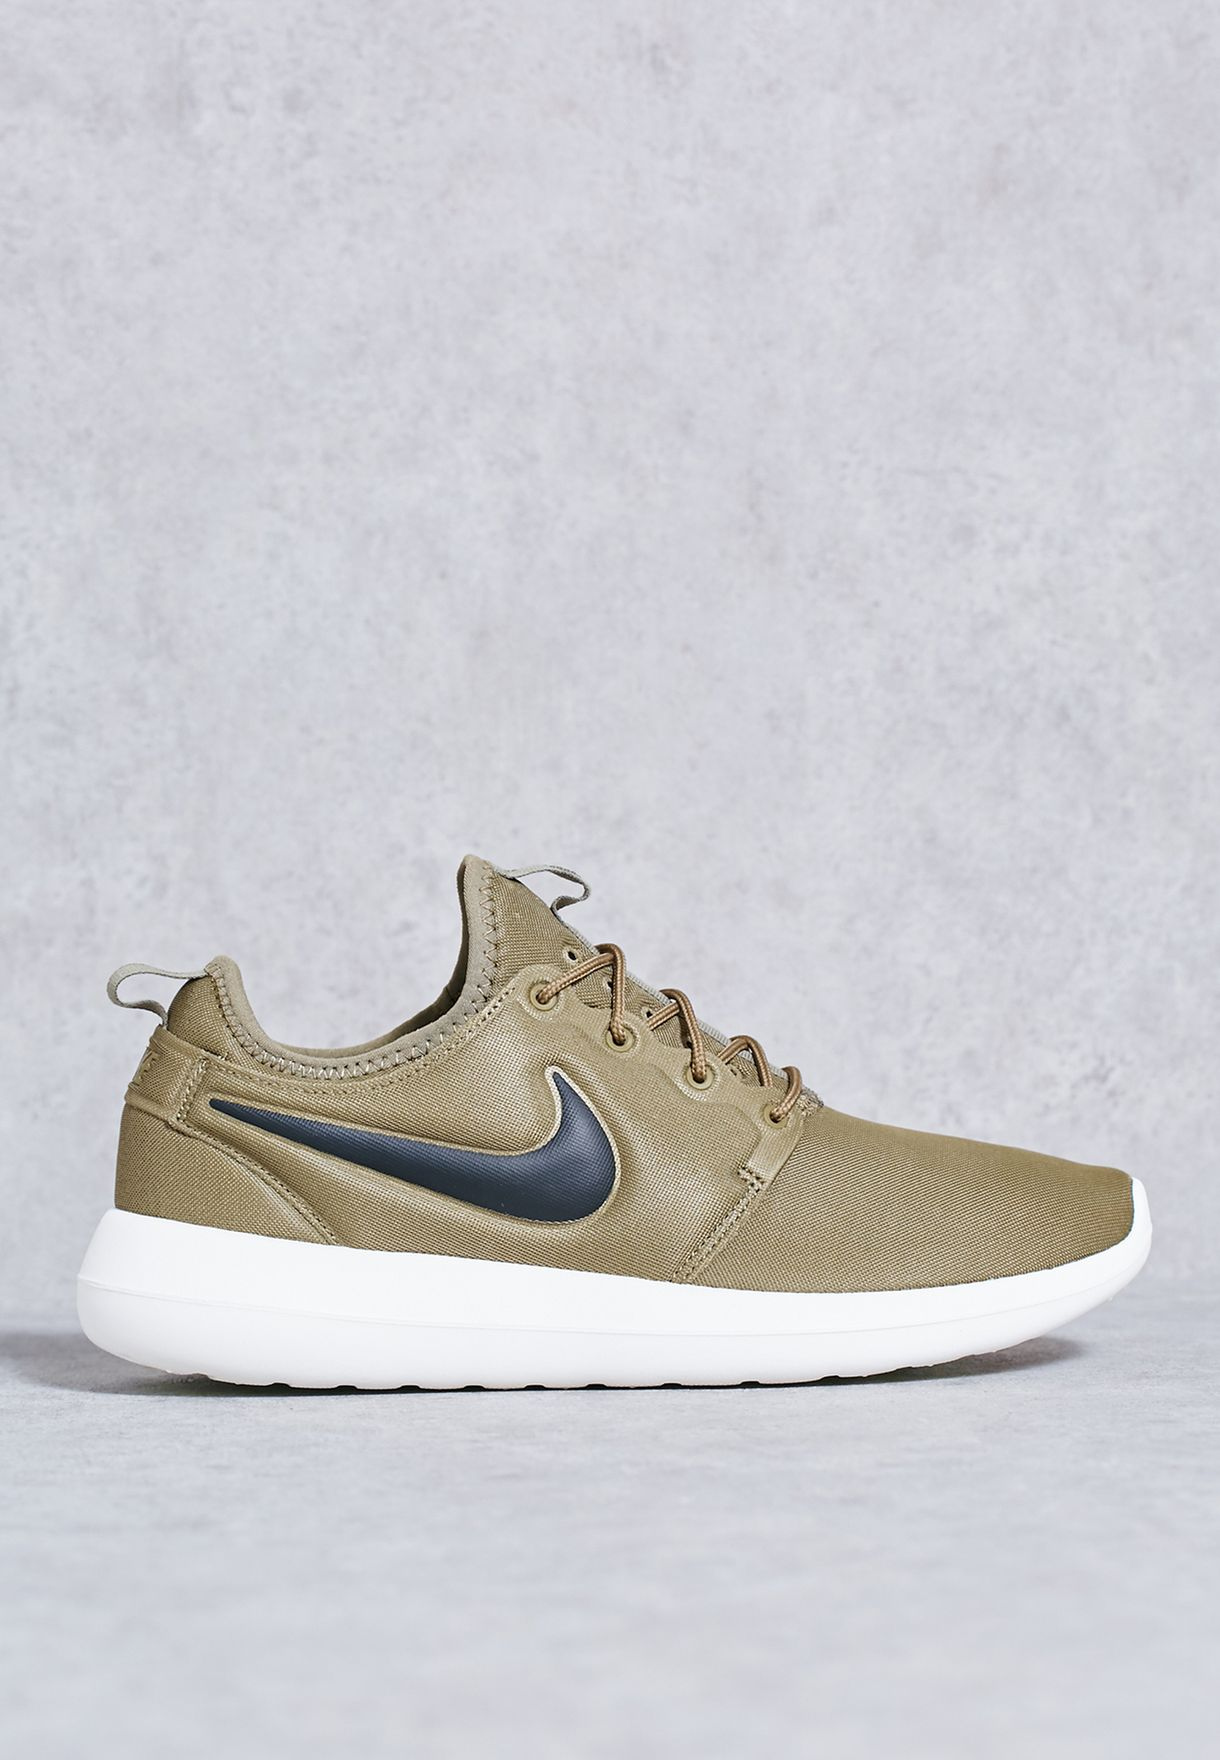 separation shoes cb54b 5d91b ... italy shop nike green roshe two 844656 200 for men in uae ni727sh72kqp  eaca1 0c968